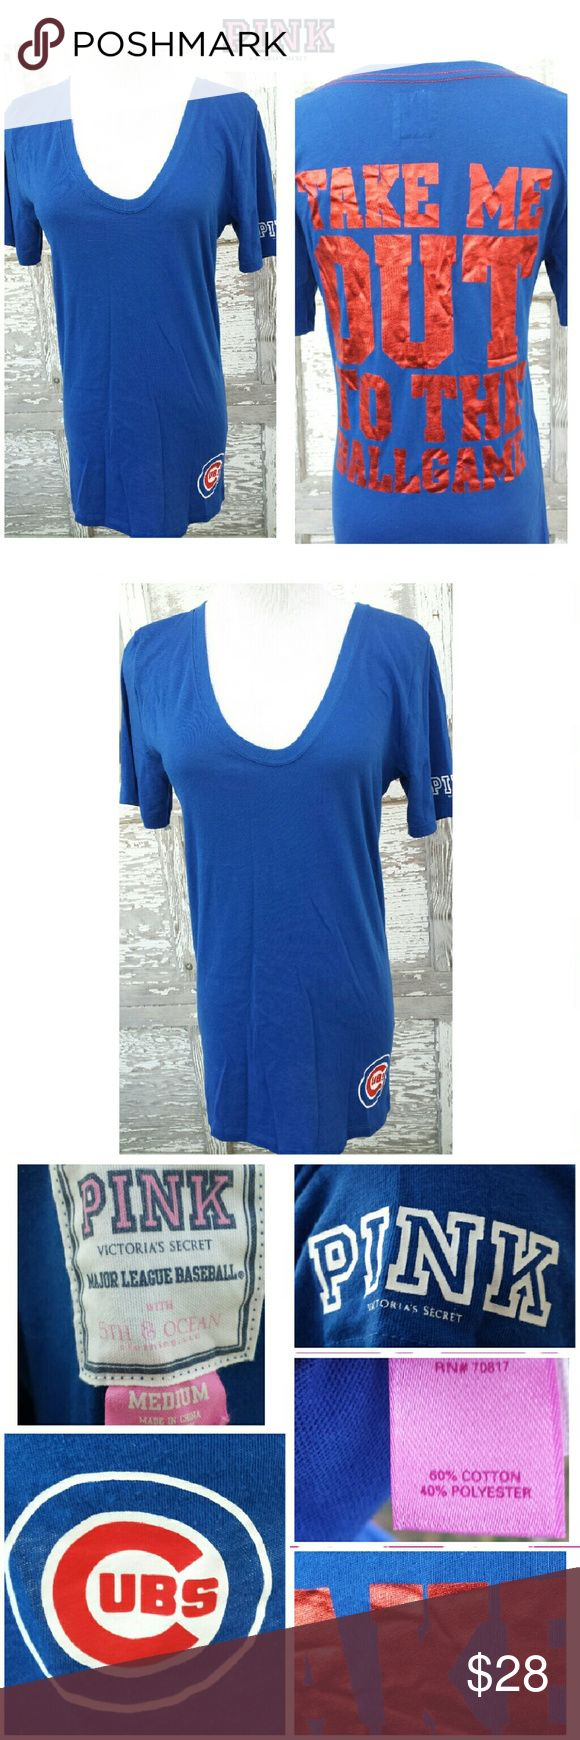 """PINK-Victoria's Secret Chicago Cubs Scoop T-shirt Rare Chicago Cubs Long Length Scoop Neck T-shirt! Cubbies Blue + Red Foil Graphic """"TAKE ME OUT TO THE BALLGAME"""" on Back. Cubs Logo on Front- L bottom of the shirt (Just above the -Hem line). """"PINK"""" Logo on L- Sleeve. Size Medium. Excellent Condition! Worn Only 1x time! Fit was too big on me. 60% Cotton & 40% Polyester. Great Quality MLB Shirt from Victoria's Secret. Style is No longer Sold in Stores & is hard to find. PINK Victoria's Secret…"""